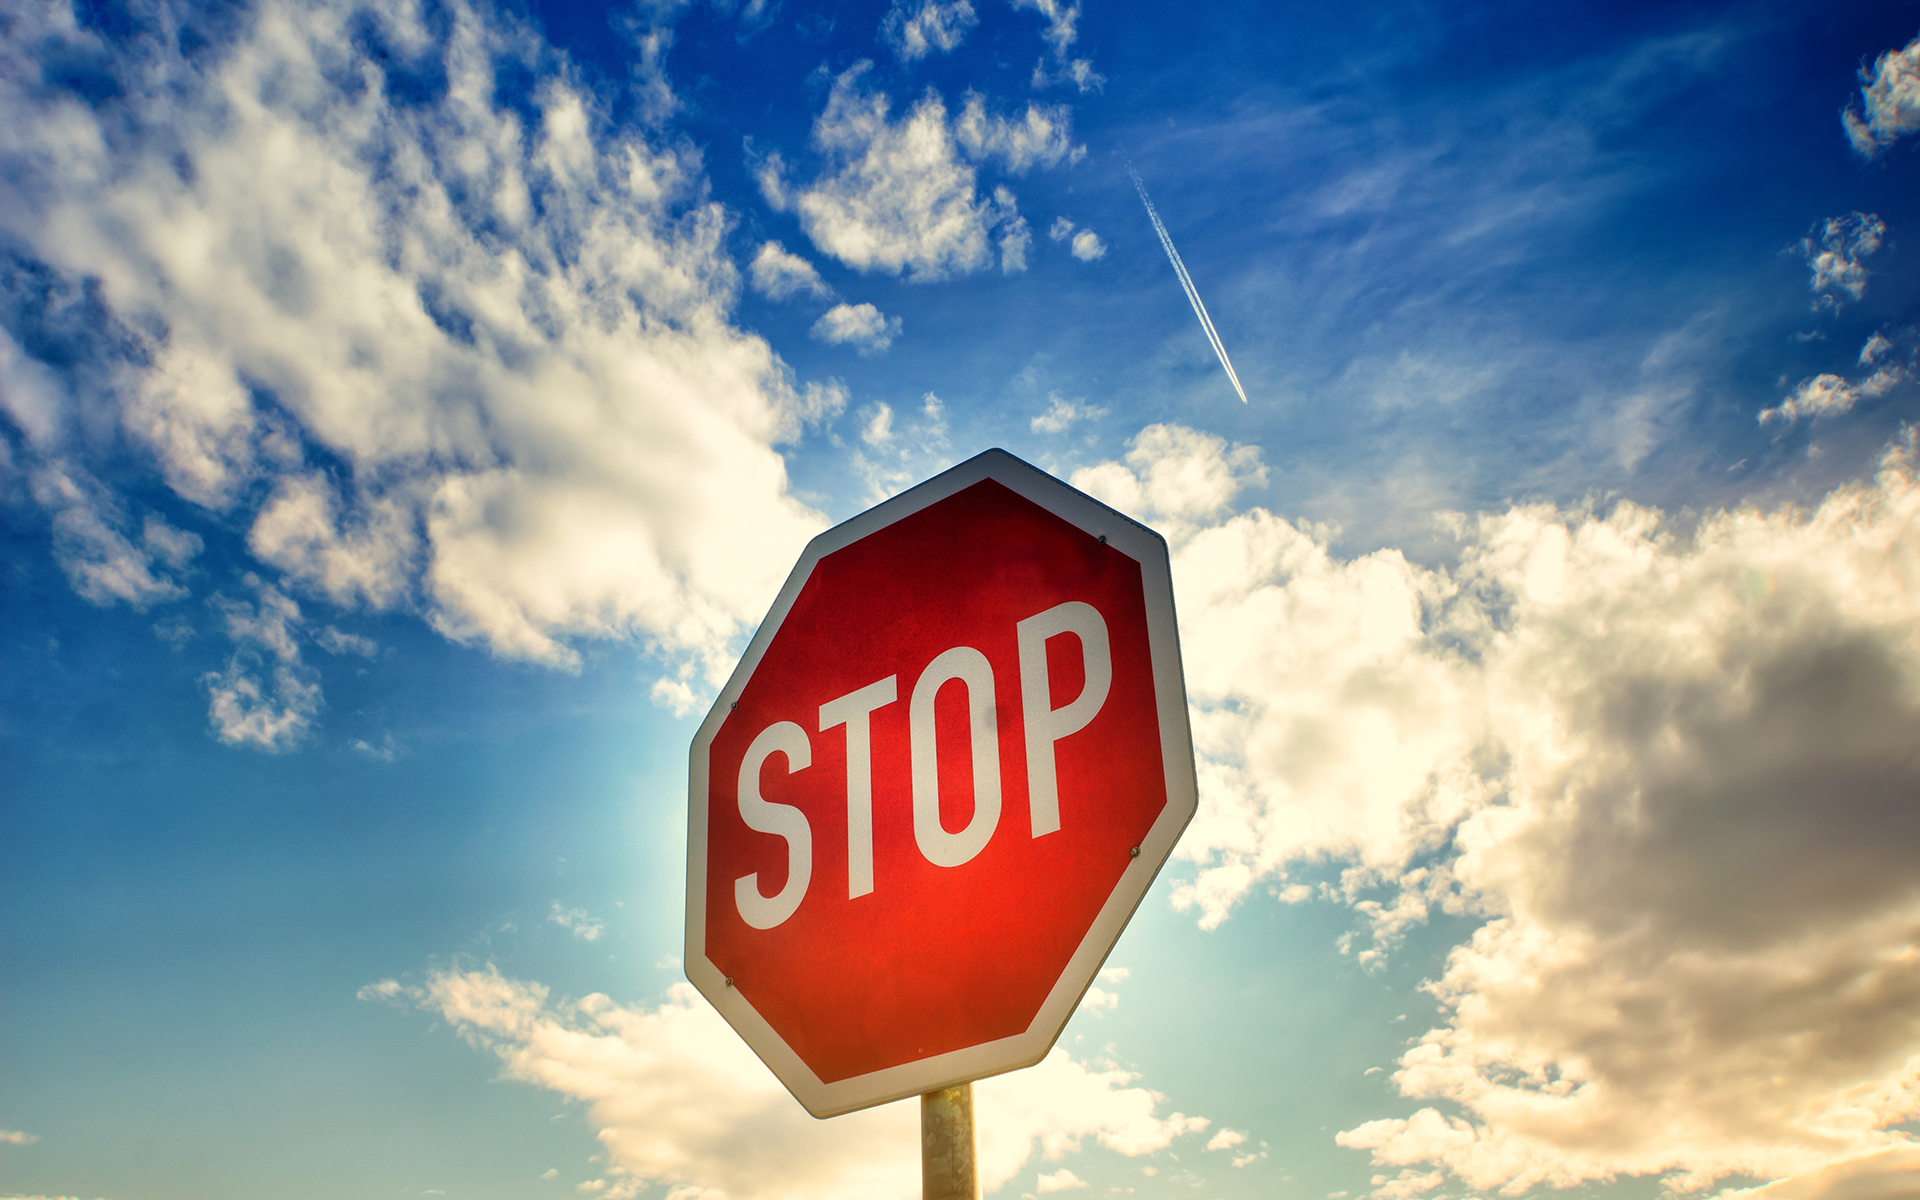 stop sign and sky